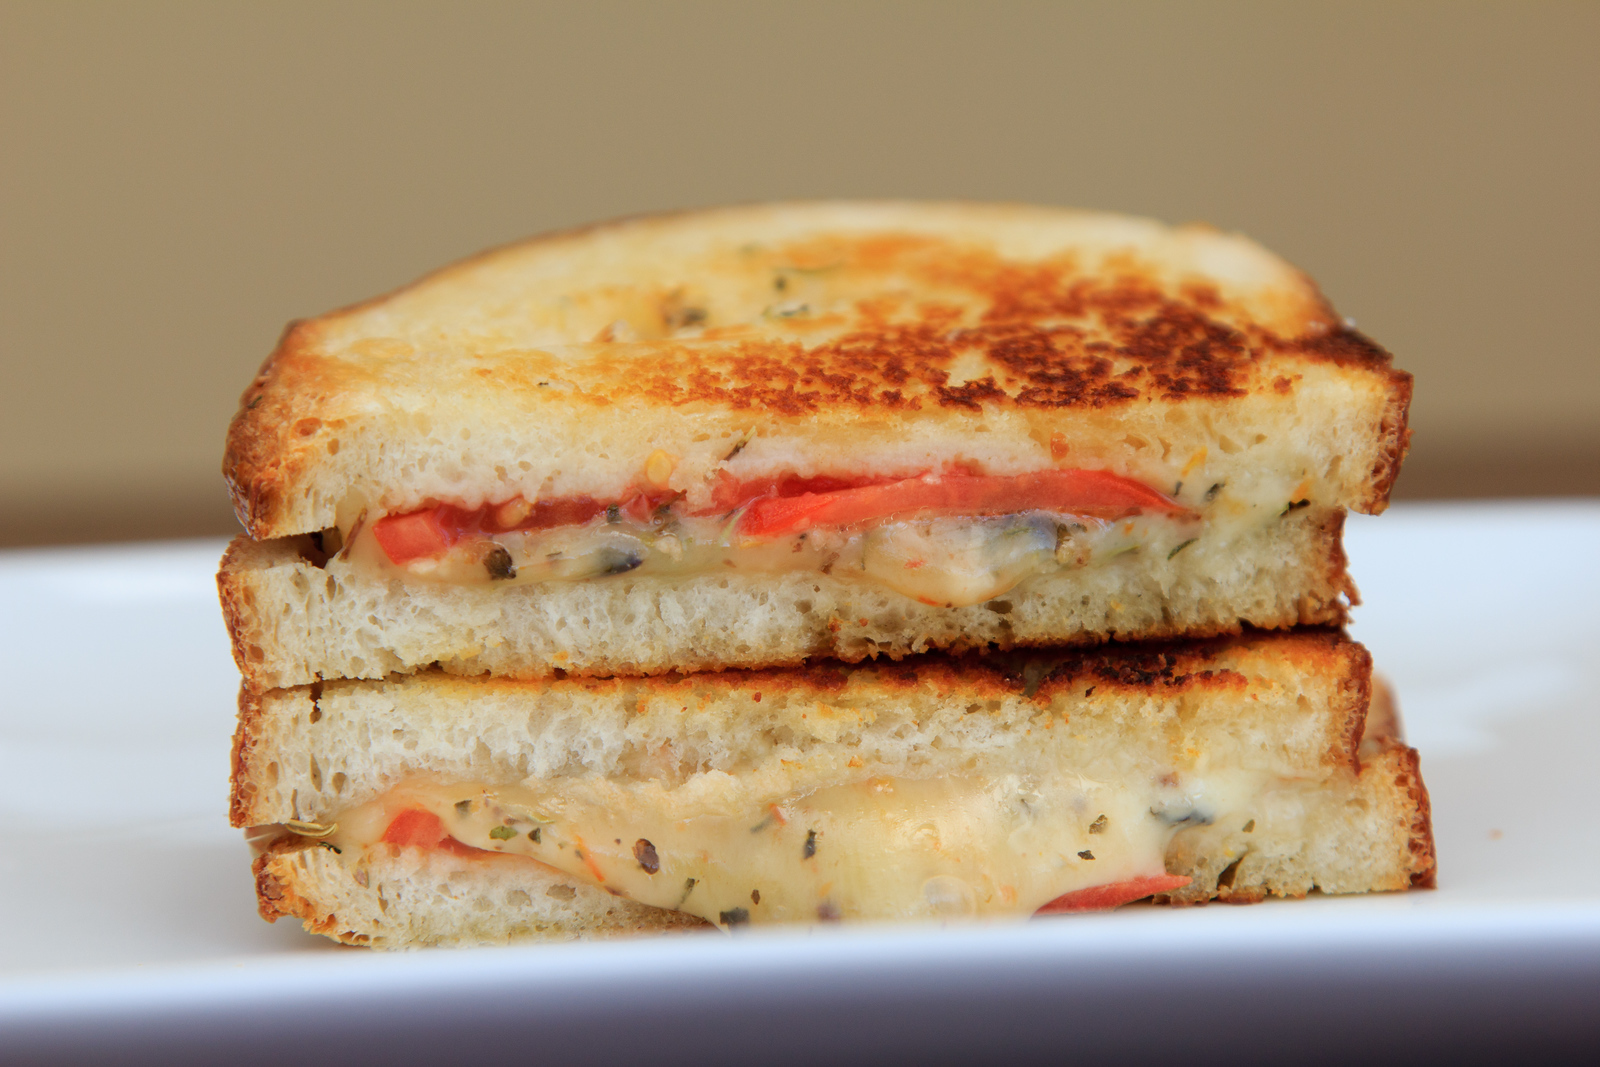 Summer Sunday Grilled Cheese